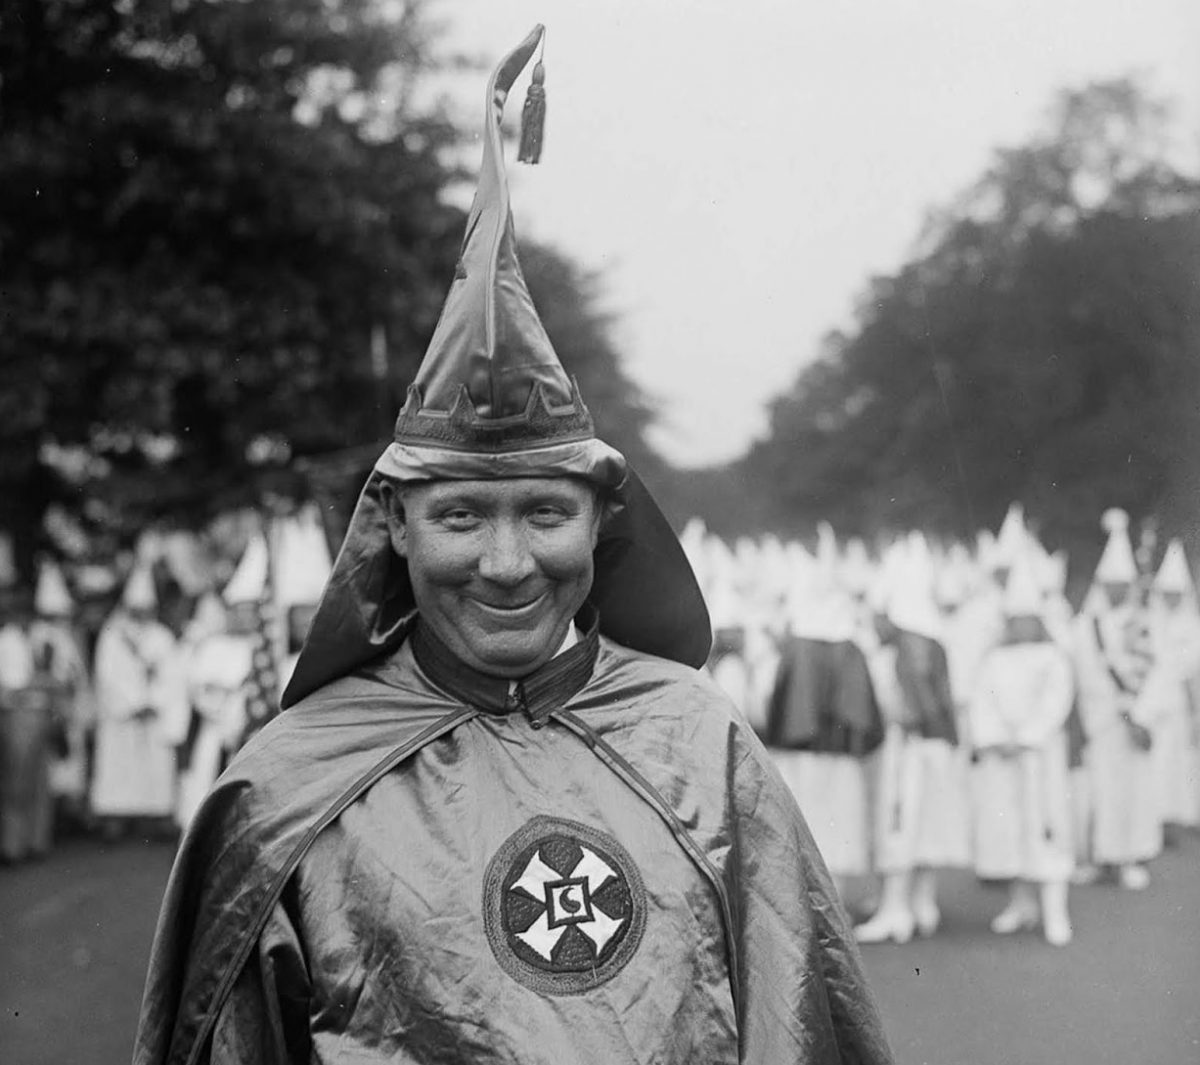 Imperial Wizard H.W. Evans